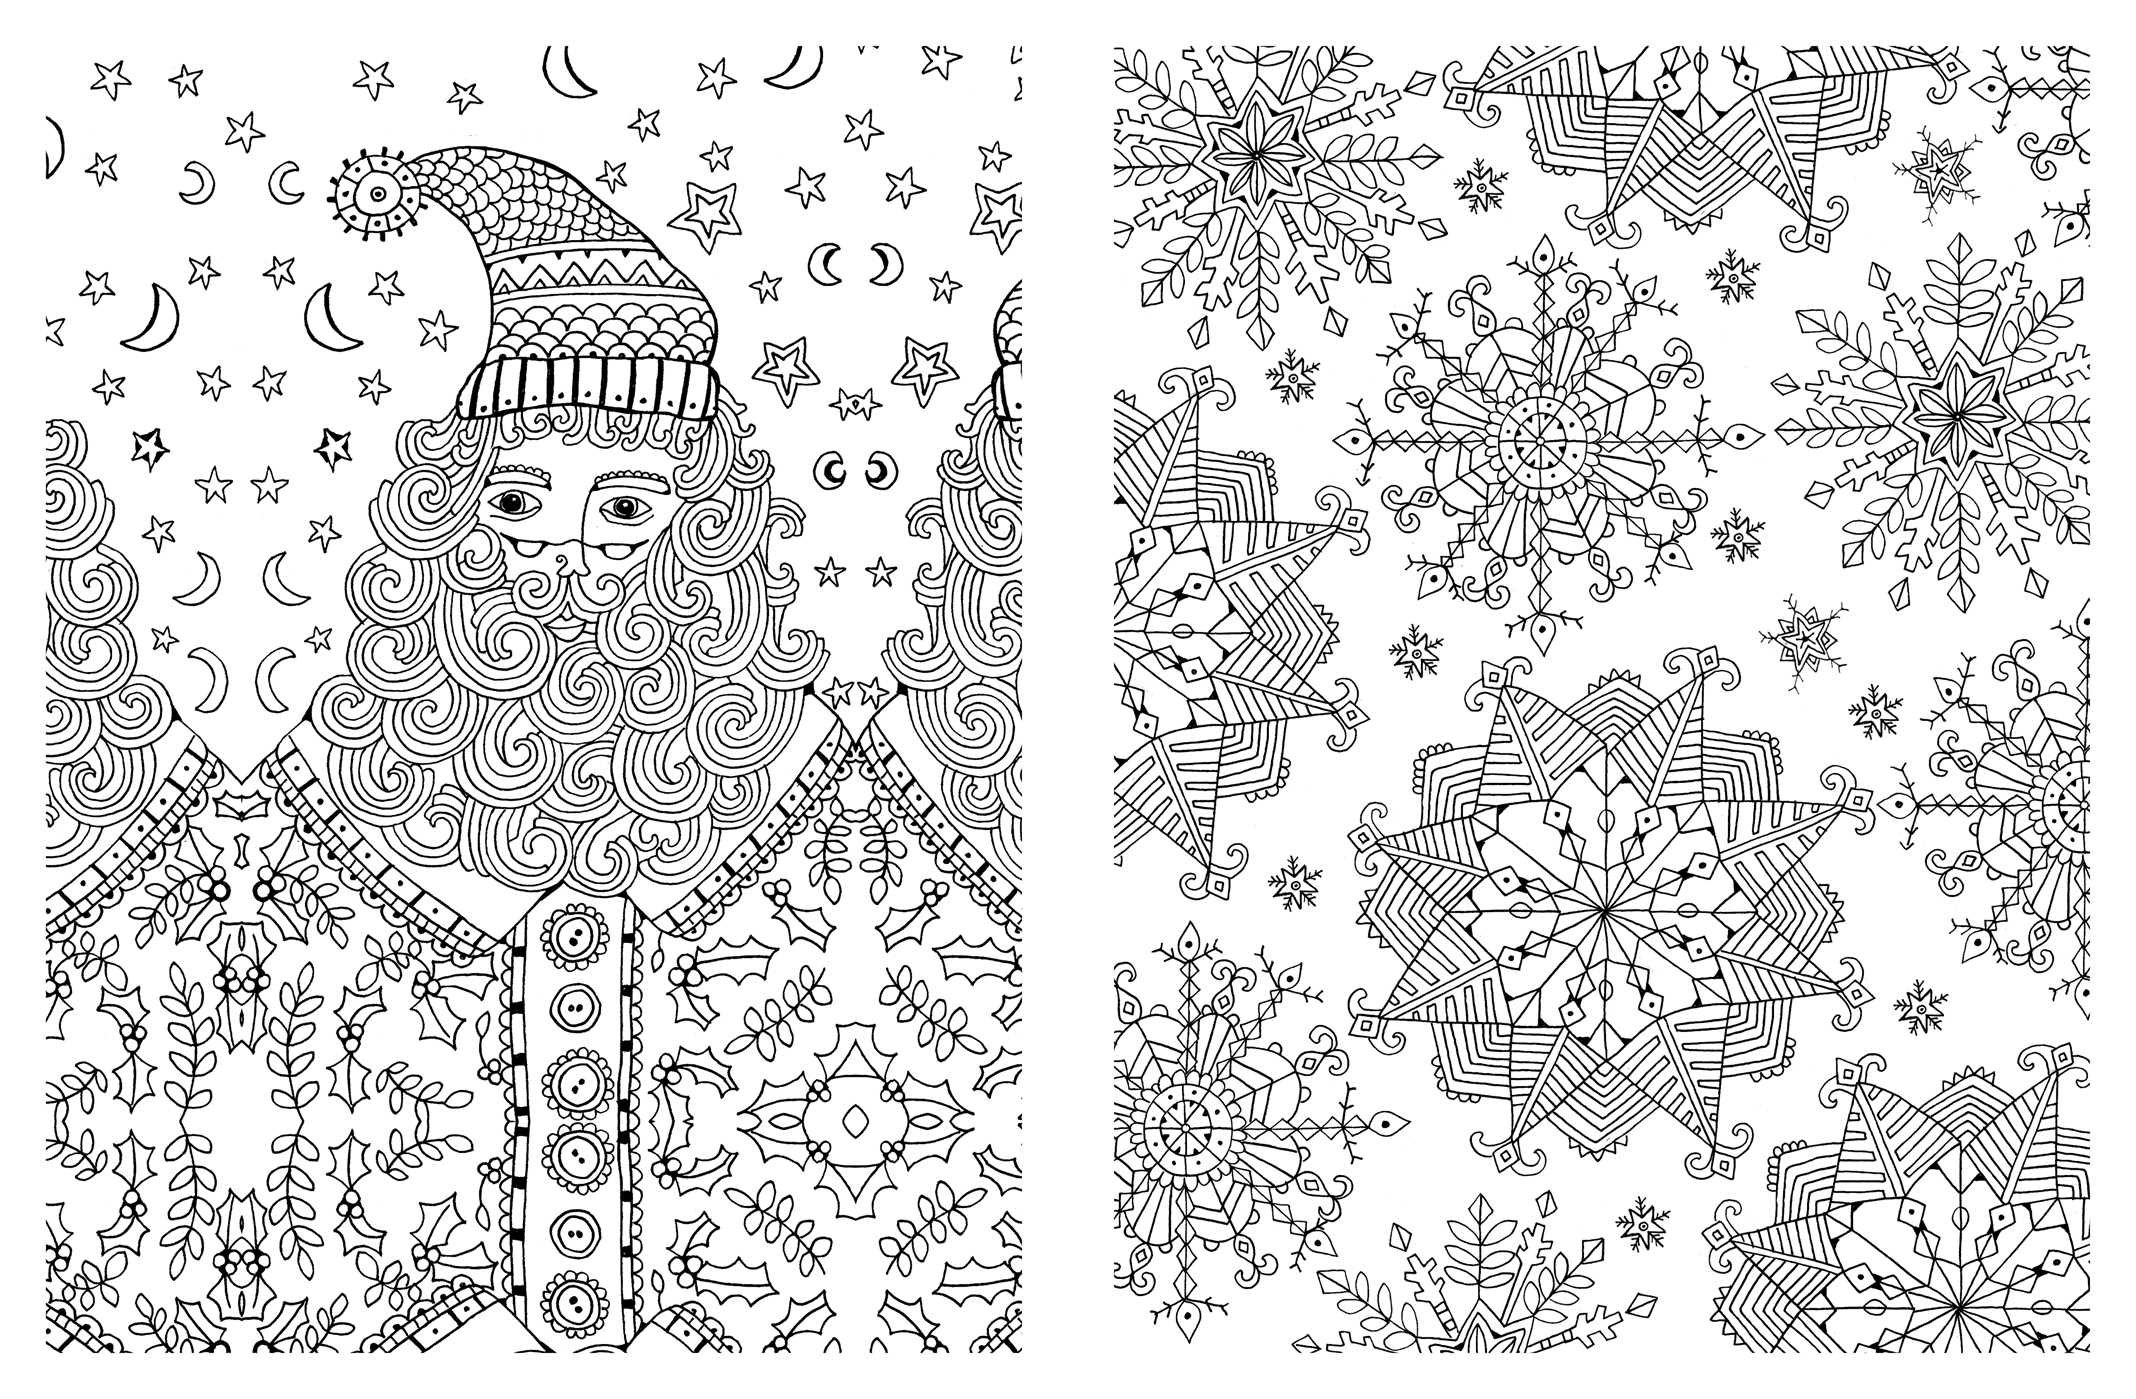 Amazon Posh Adult Coloring Book Christmas Designs for Fun